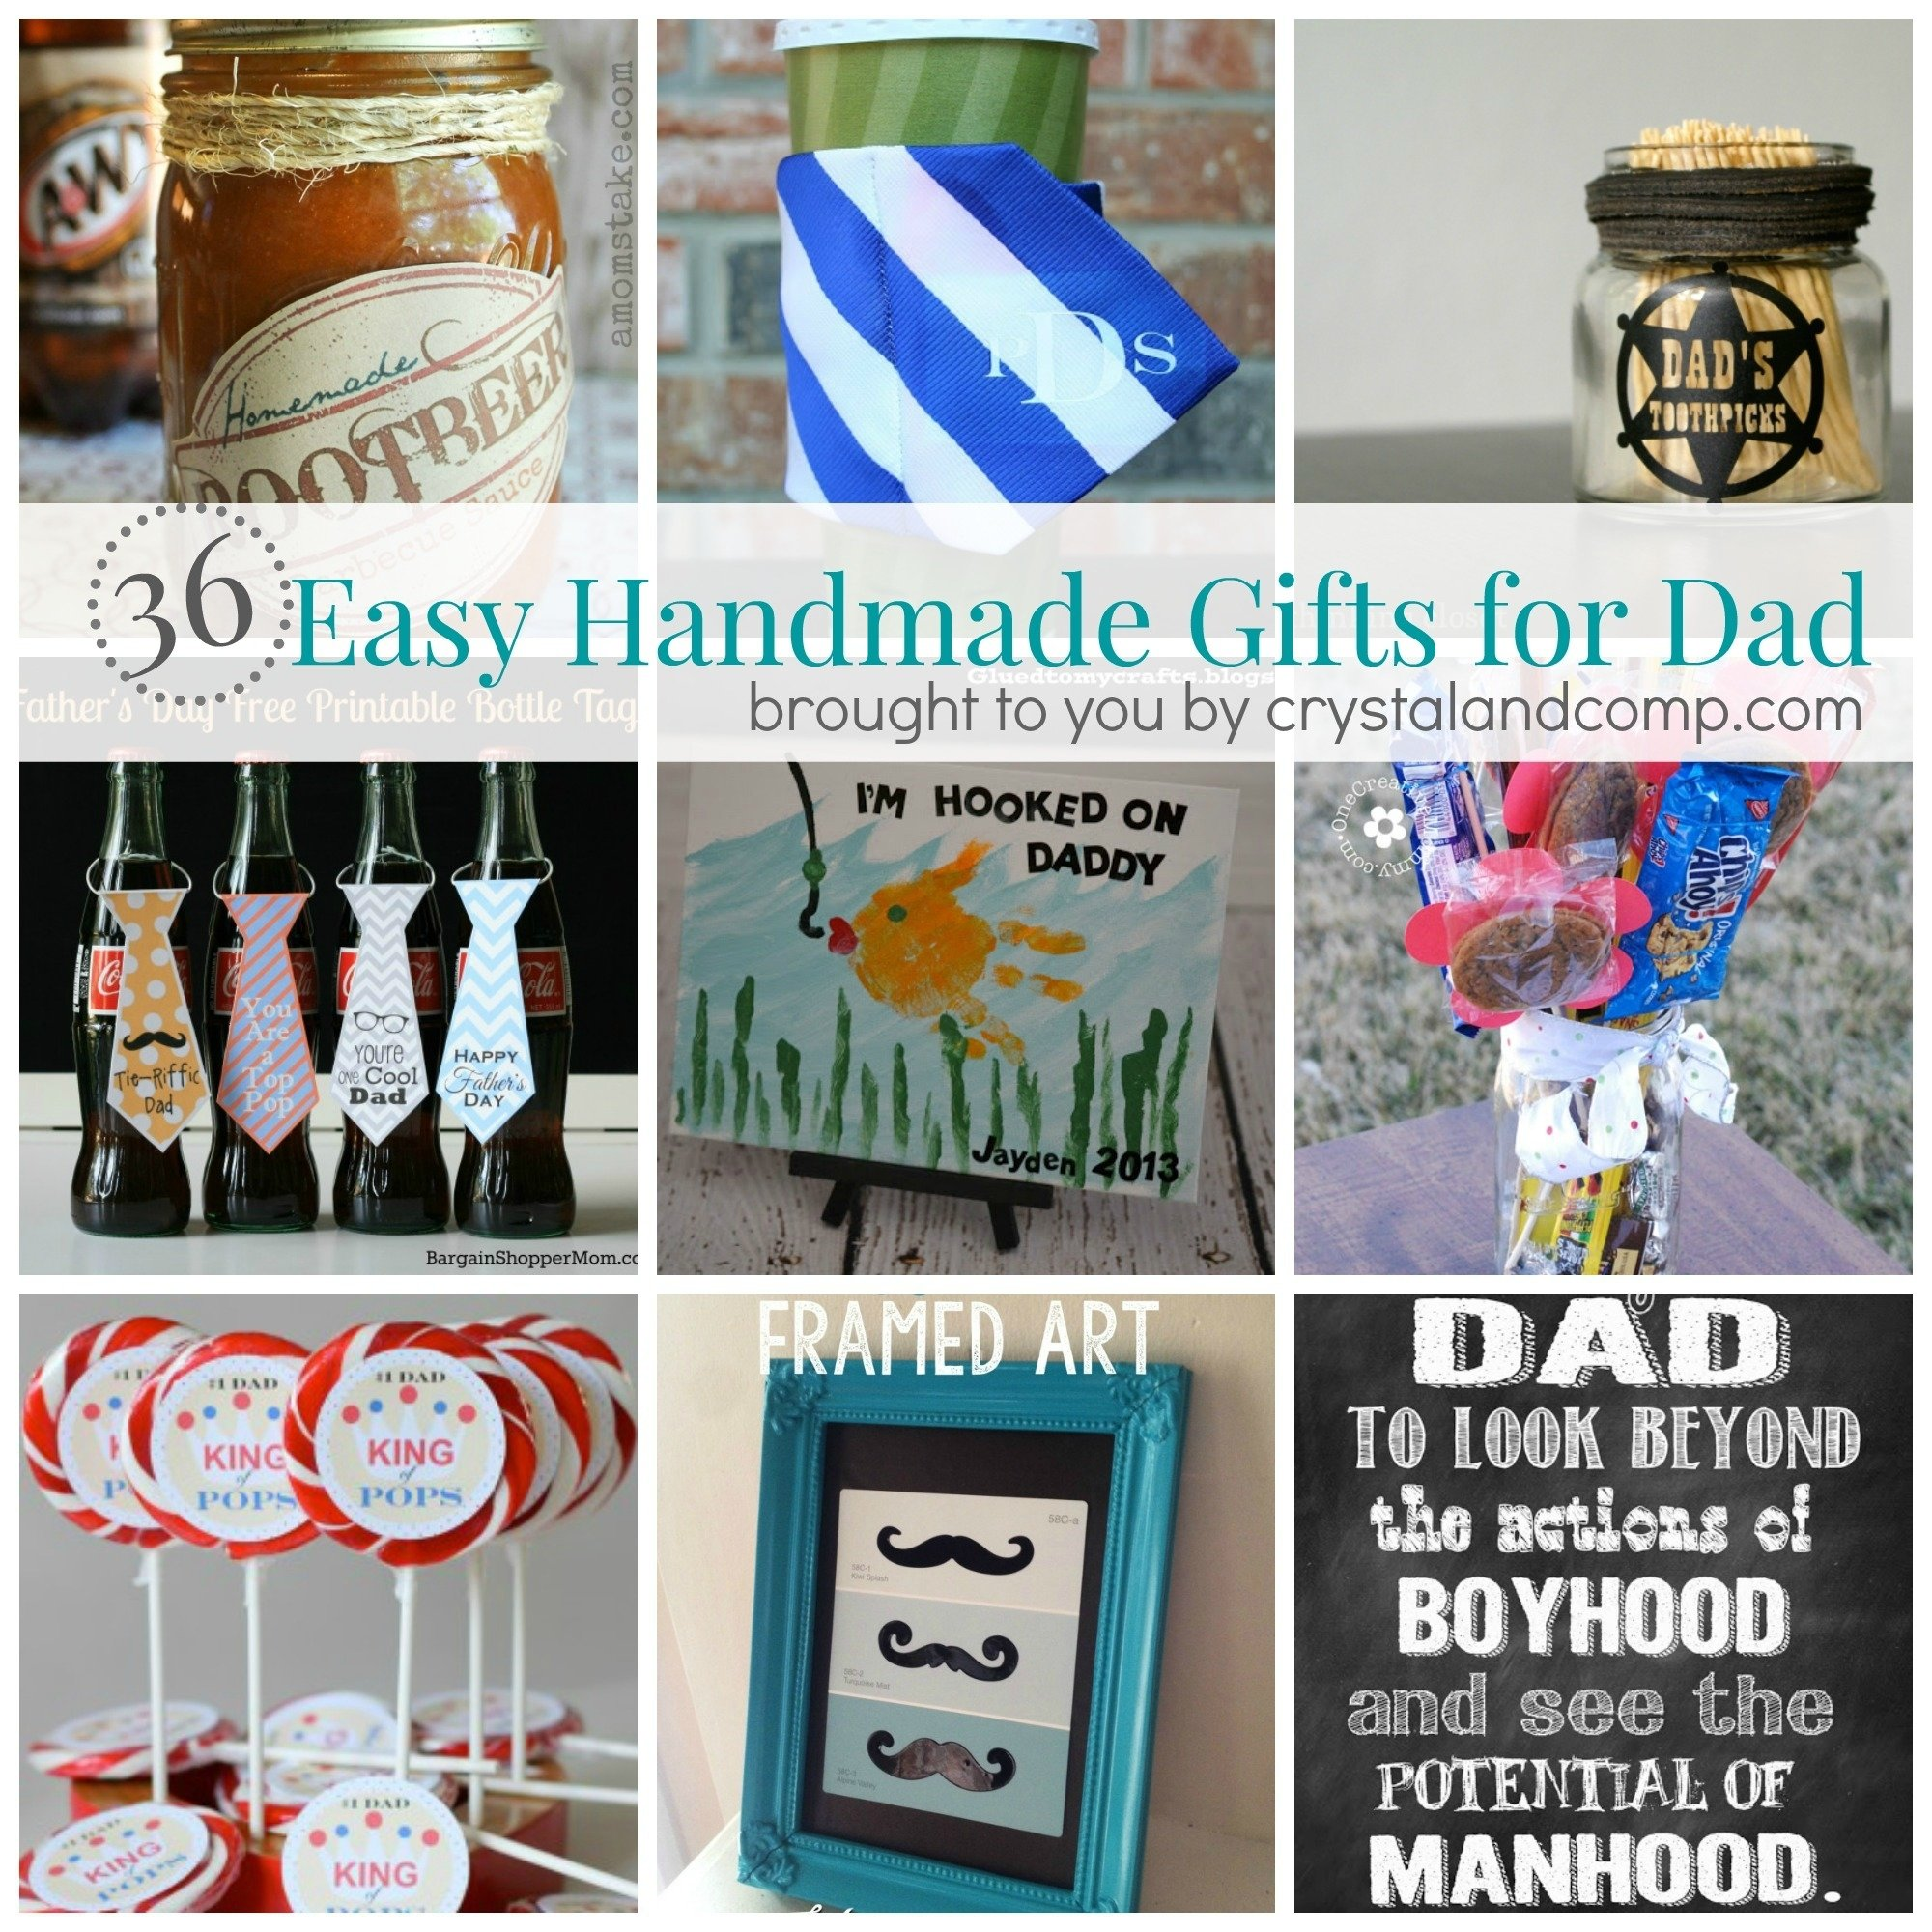 10 Nice Christmas Gift Ideas For Dads